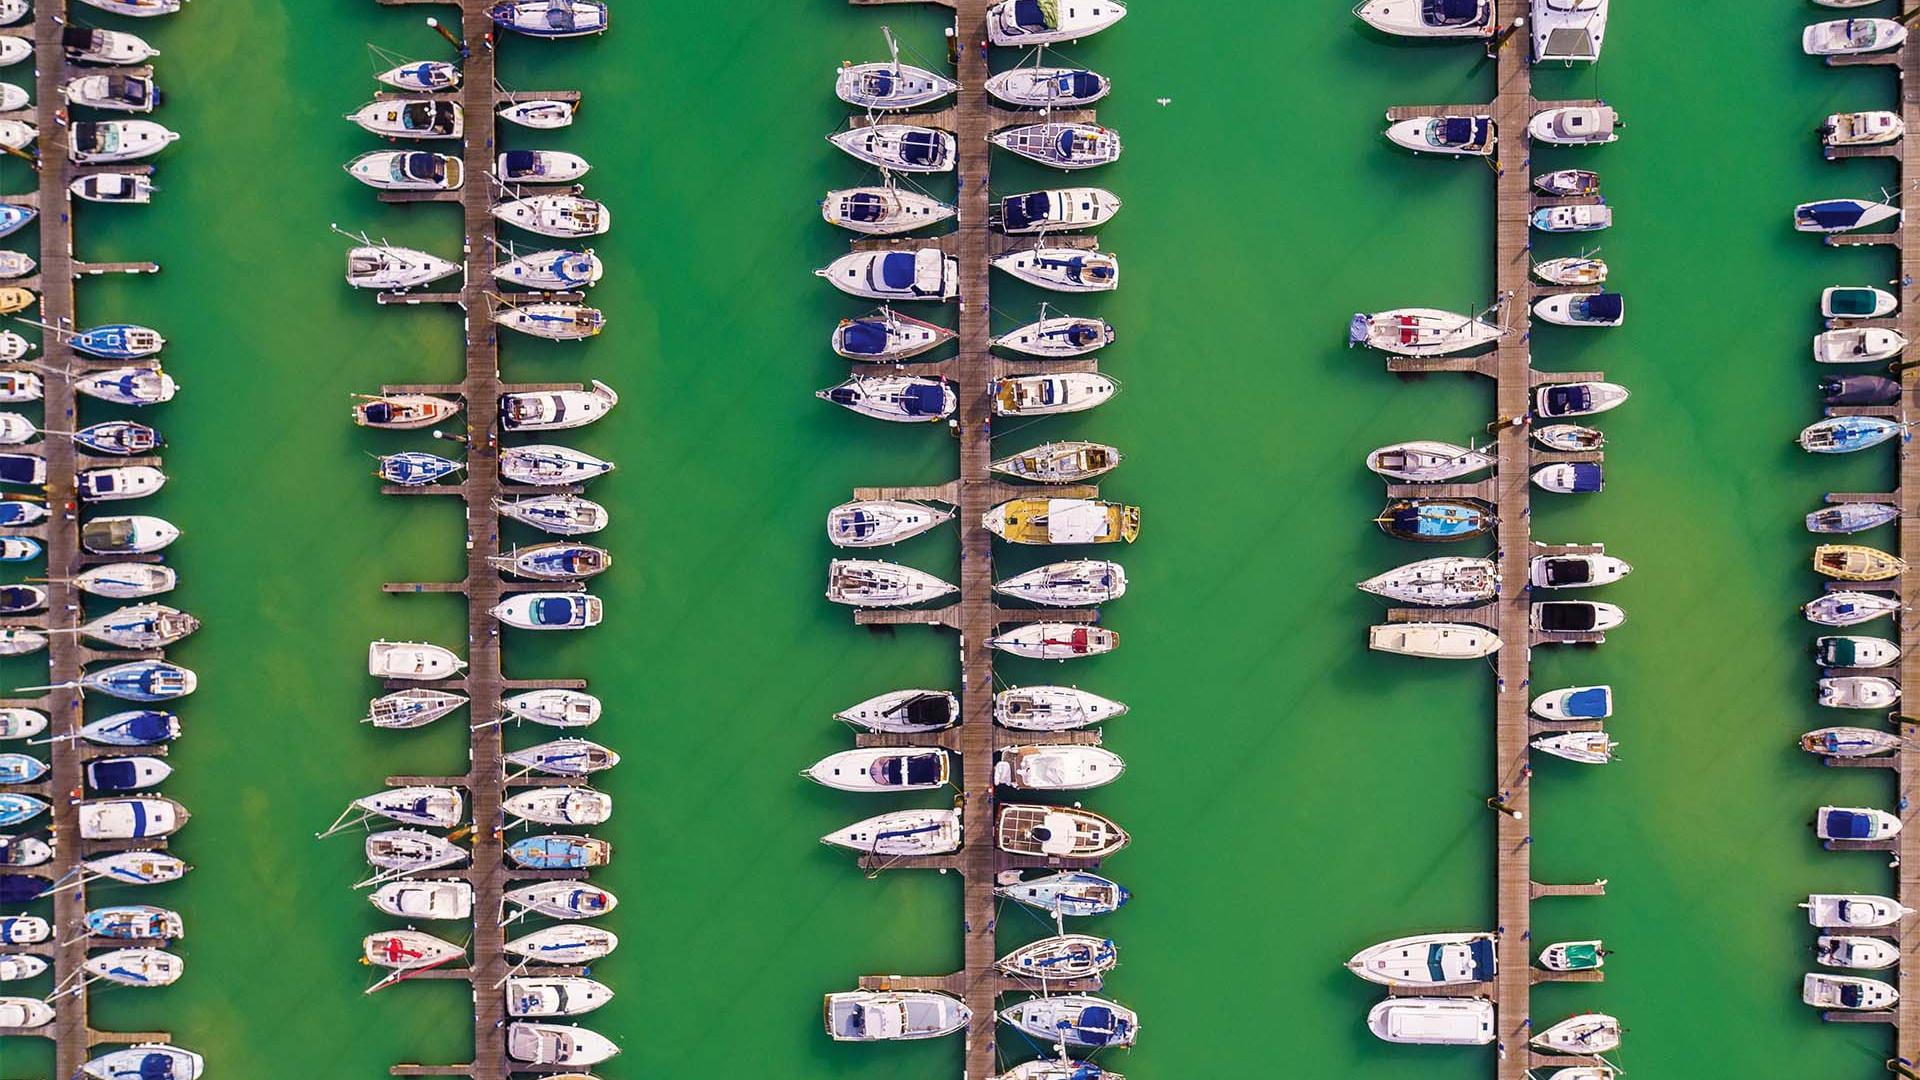 Brighton Marina from a drone